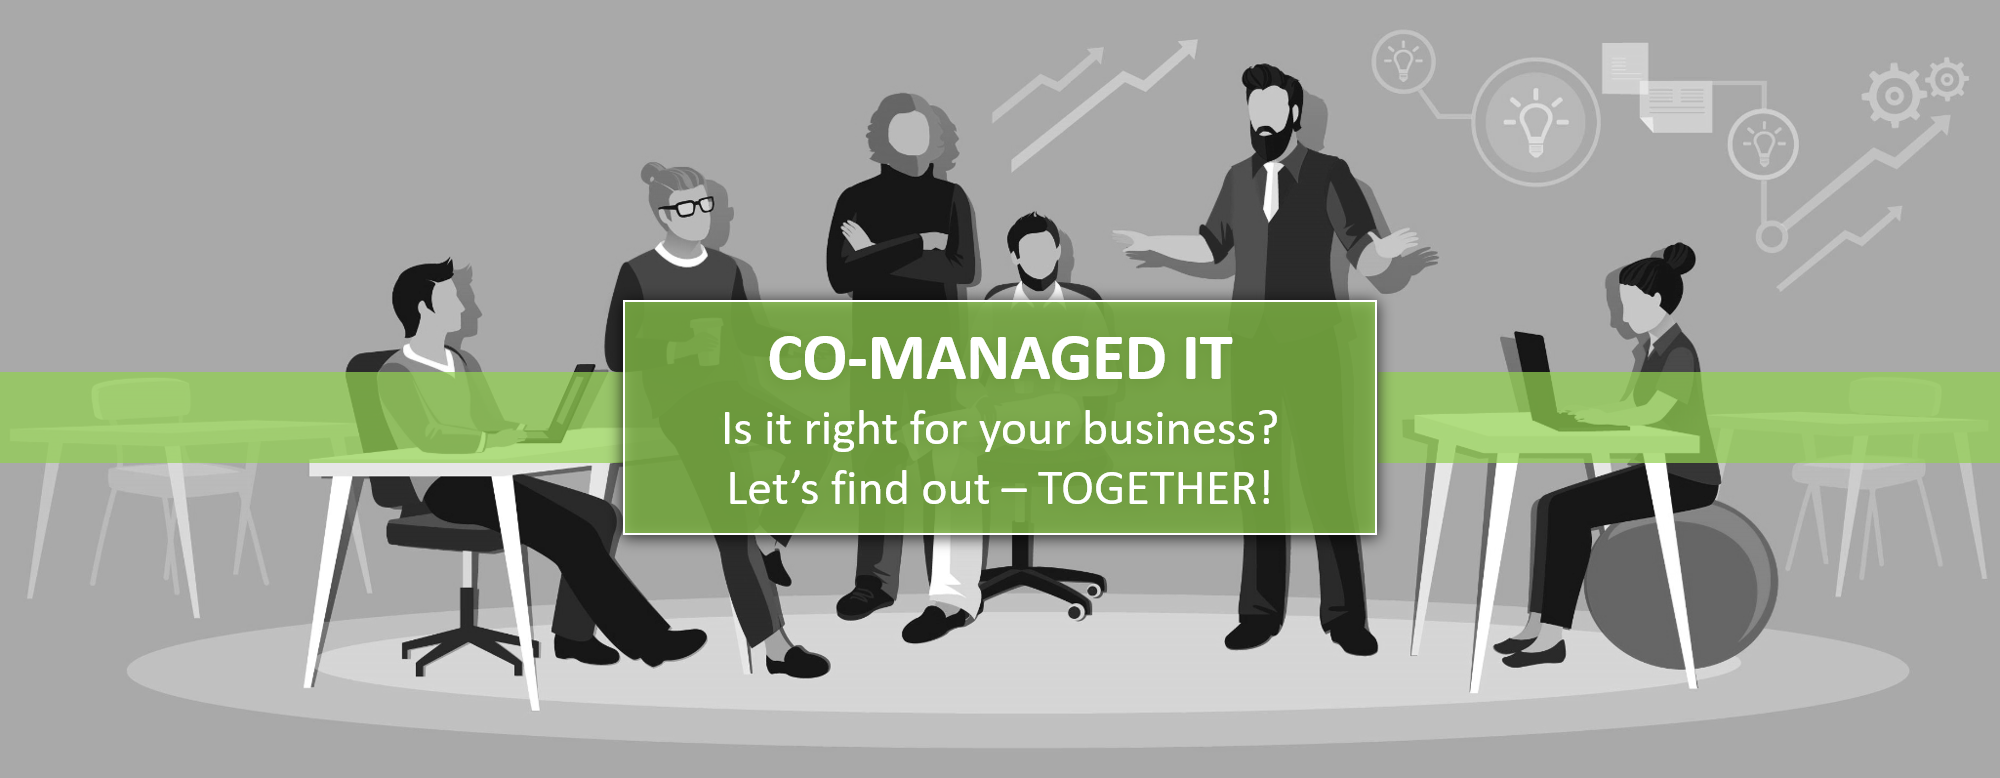 co working and co managed space concept header image